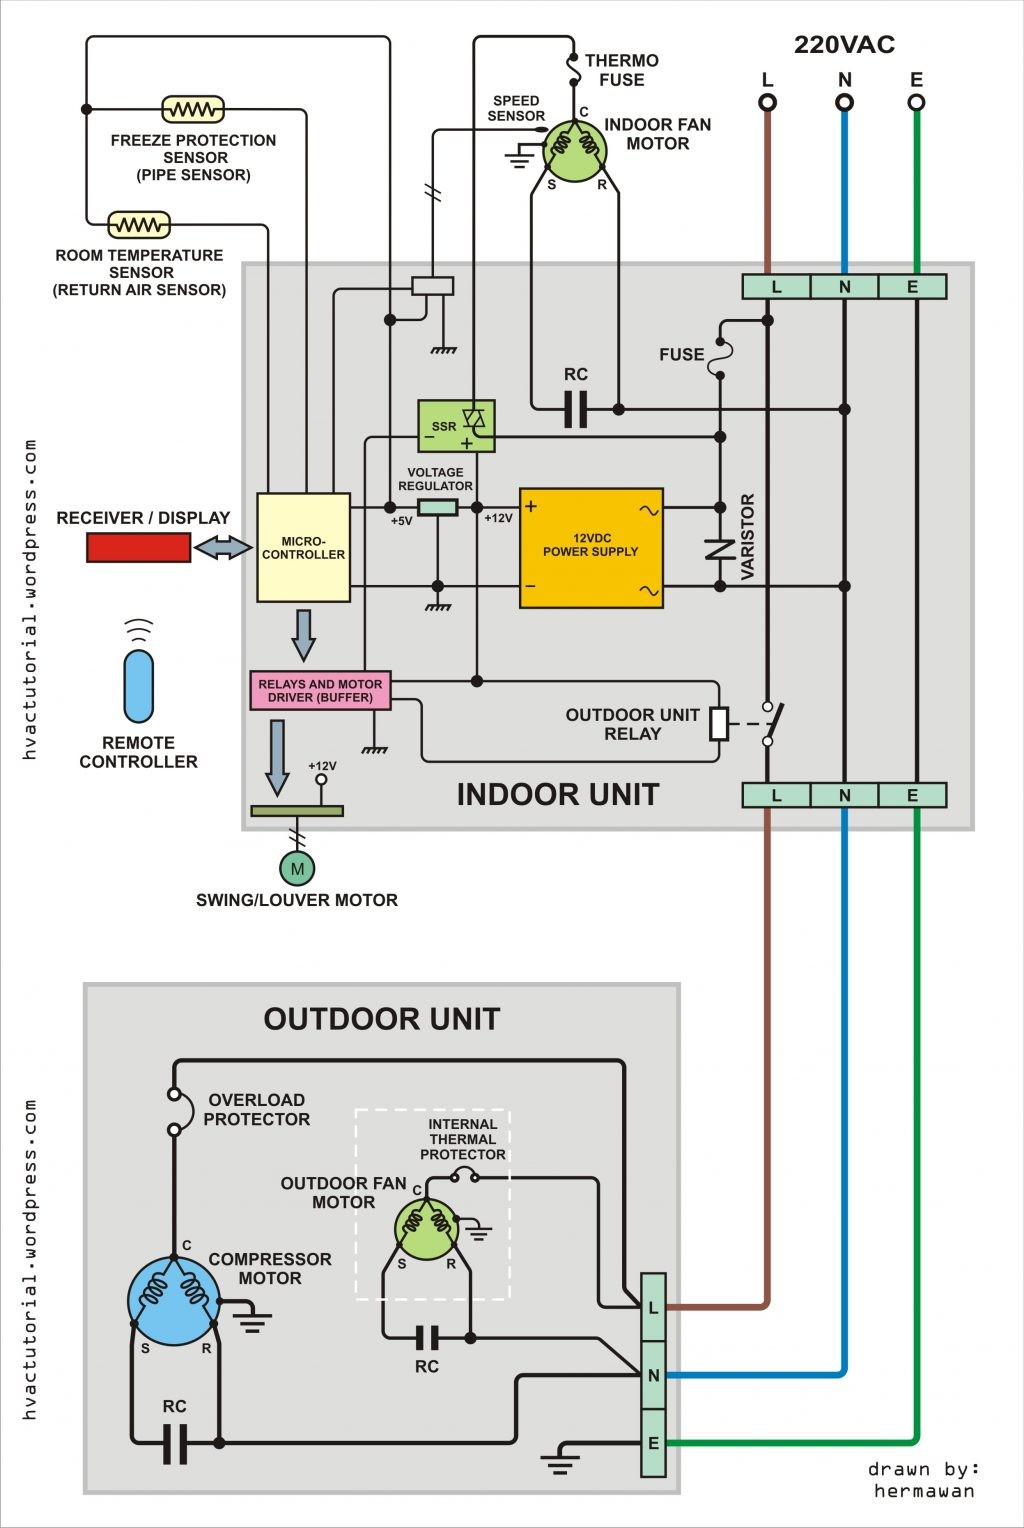 Aironditioner Wiring Diagram Split Window Pdf Lg